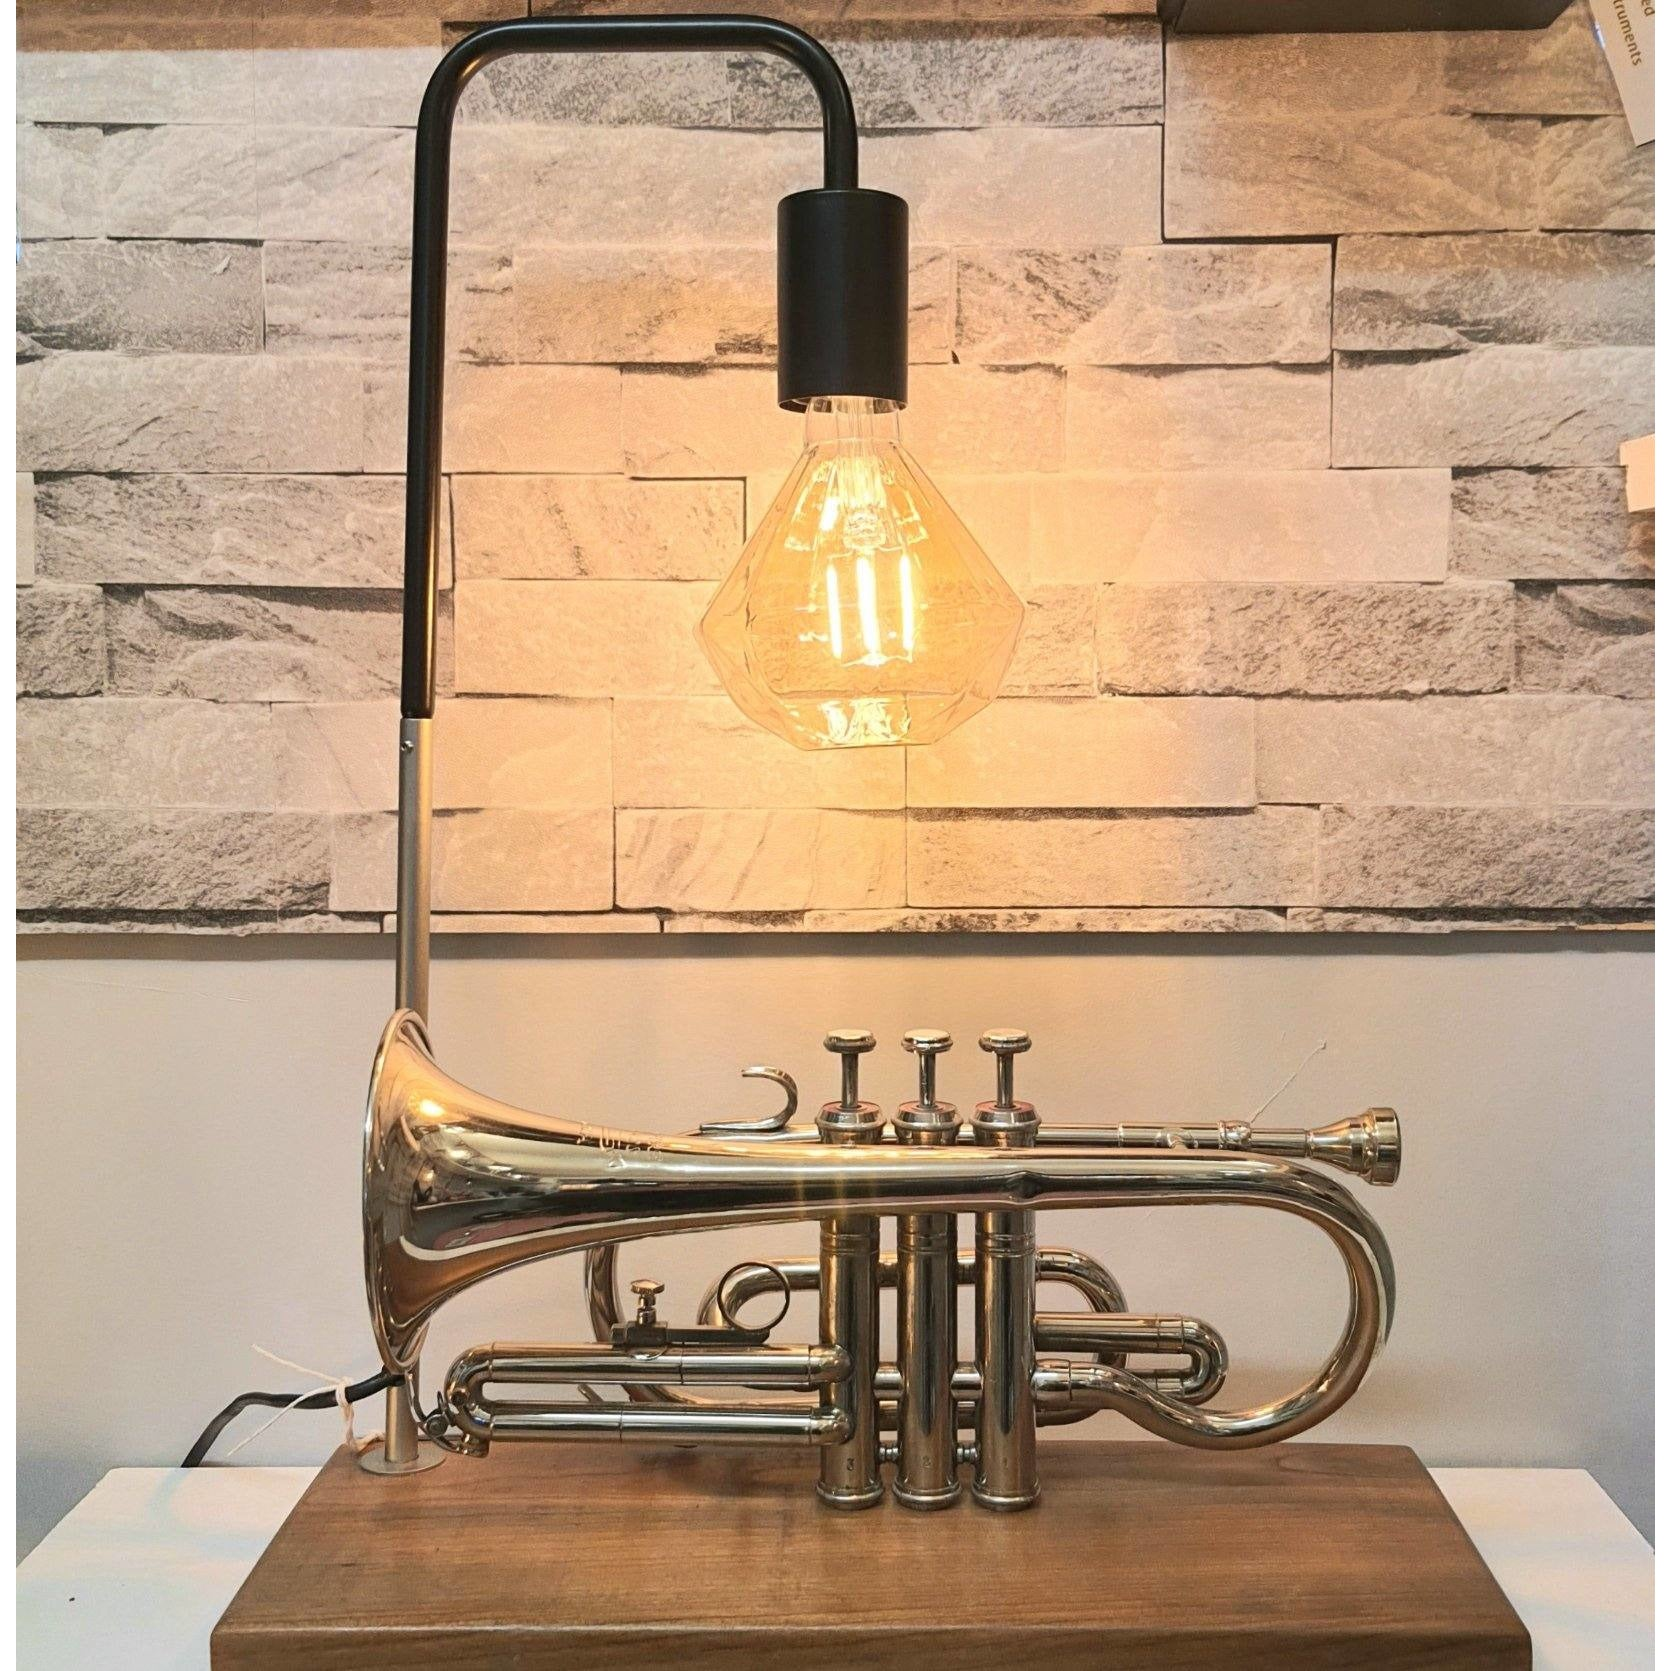 Upcycled trumpet lamp - The Emporium - Buy Handmade - the home of handmade gifts in Northants